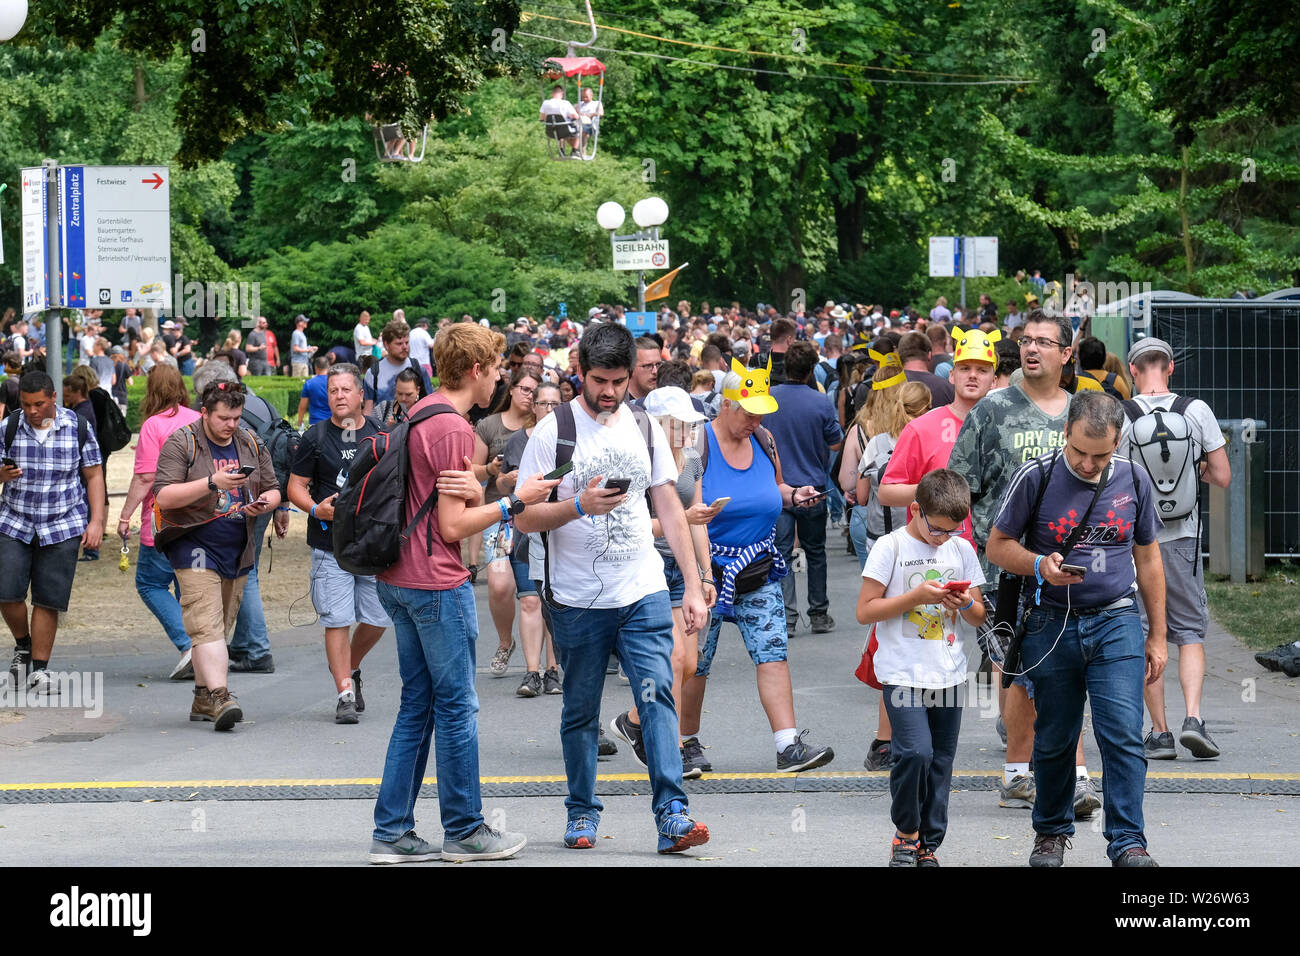 Dortmund, Germany, July 06, 2019: Players attend Pokemon Go Fest at